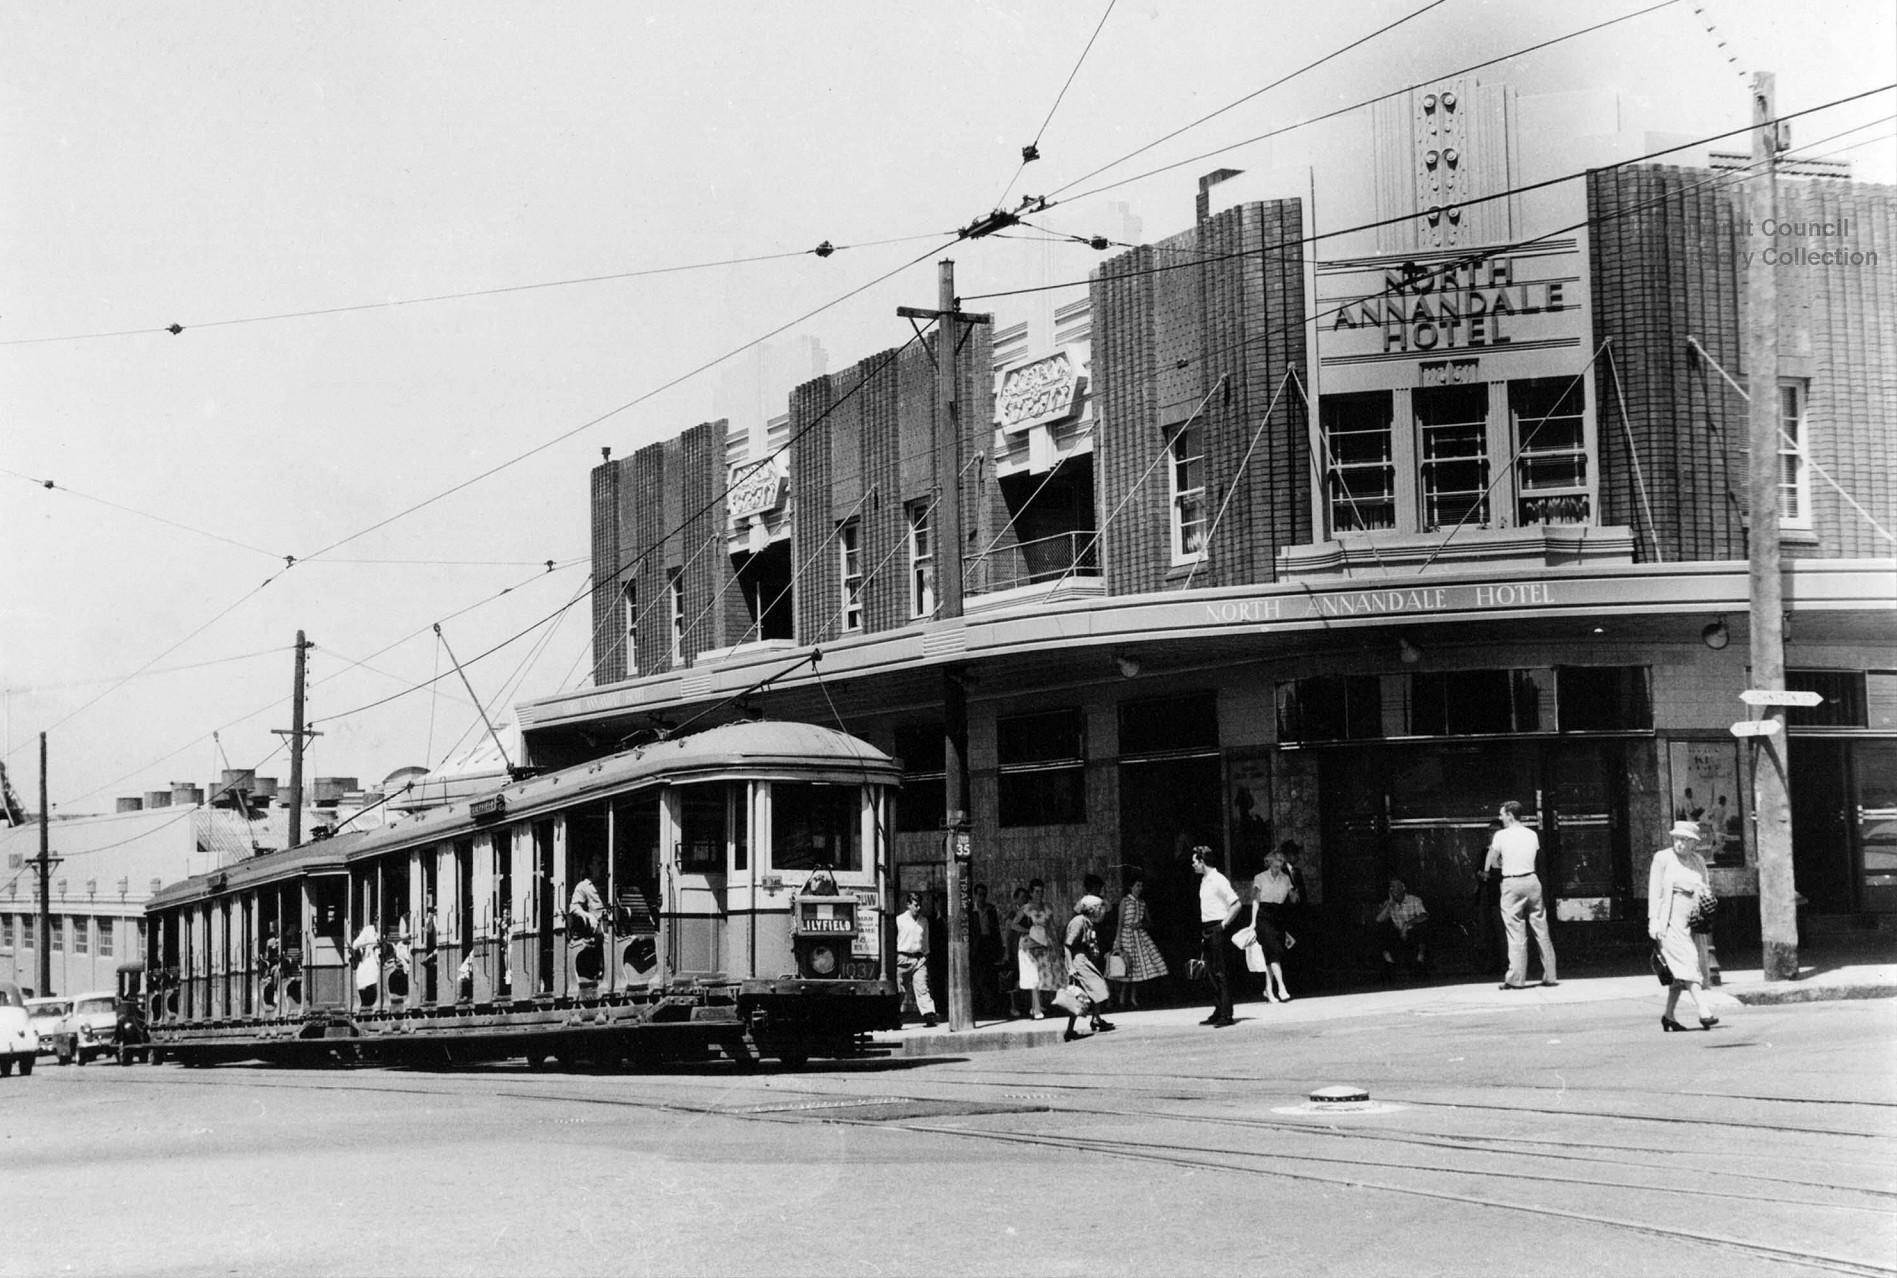 File:Corner Booth and Johnston Streets, Annandale, NSW 1955.jpg1955